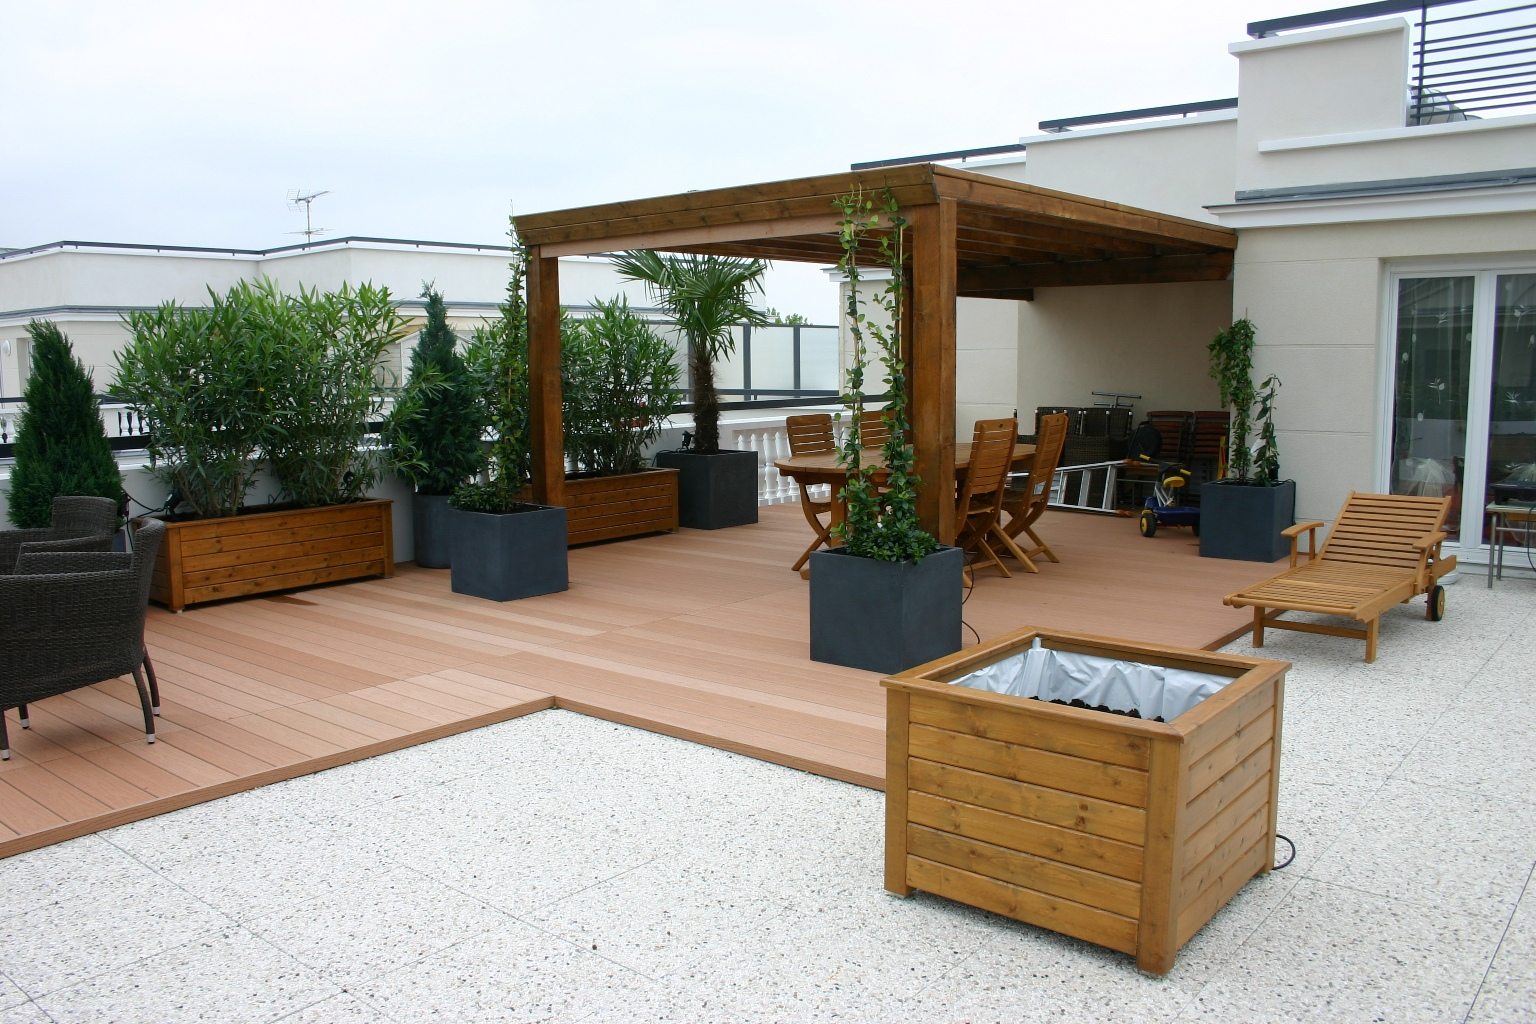 Comment am nager sa terrasse for Amenager une terrasse